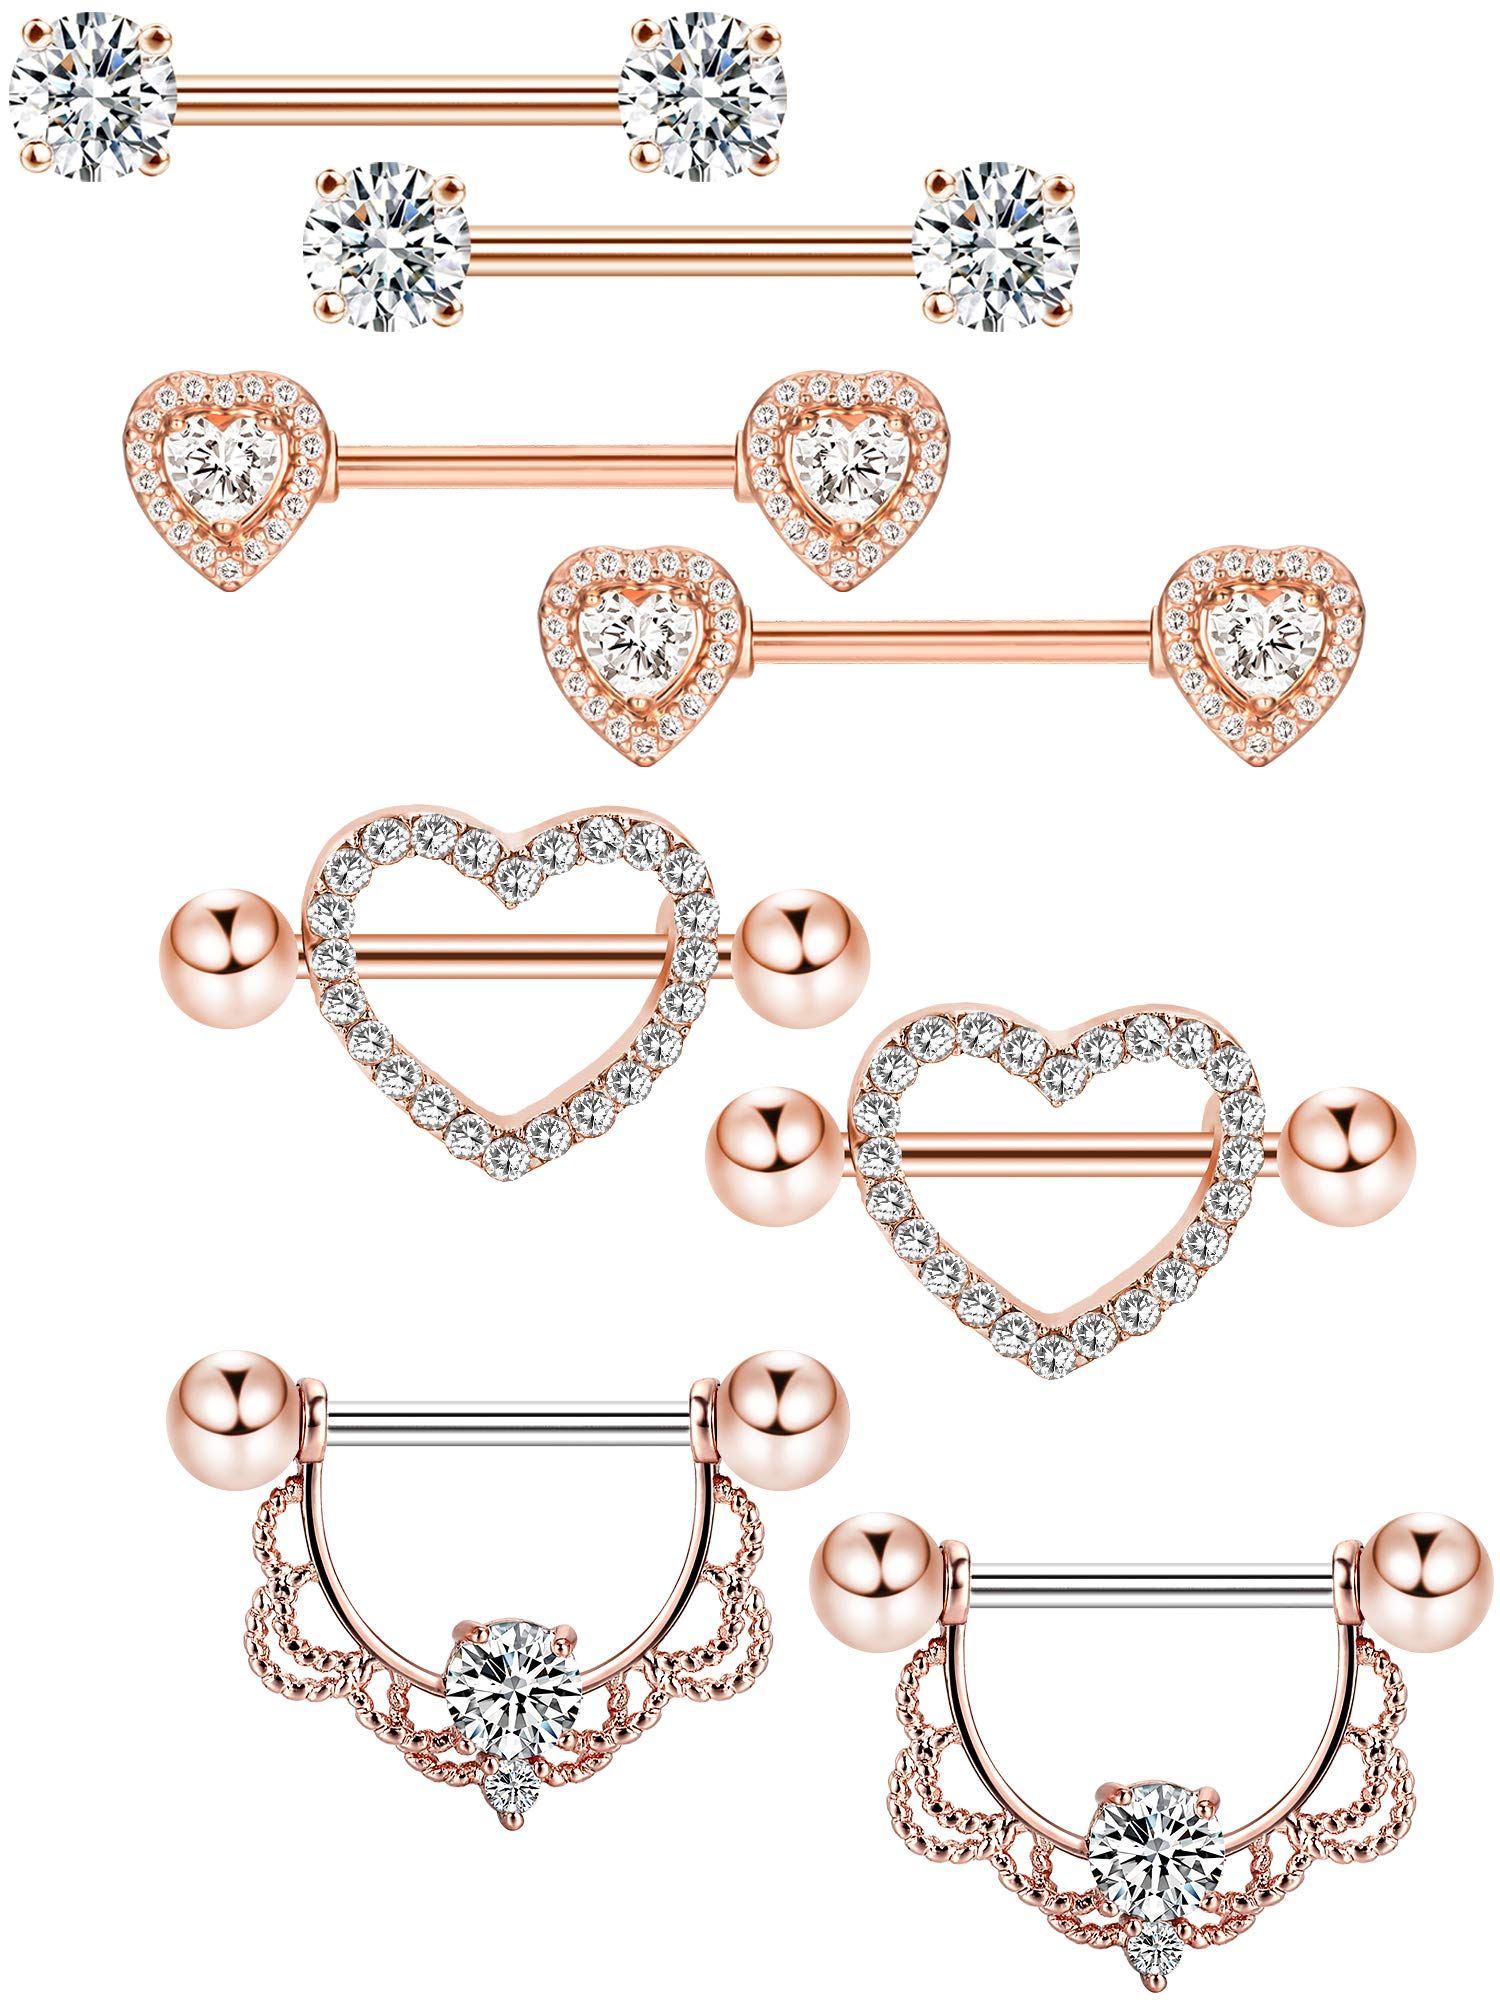 Tatuo 4 Pairs Stainless Steel Nipple Rings Tongue Ring Piercing Body Jewelry Barbell CZ Heart Shape Rings for Women Girls (Color 2) by Tatuo